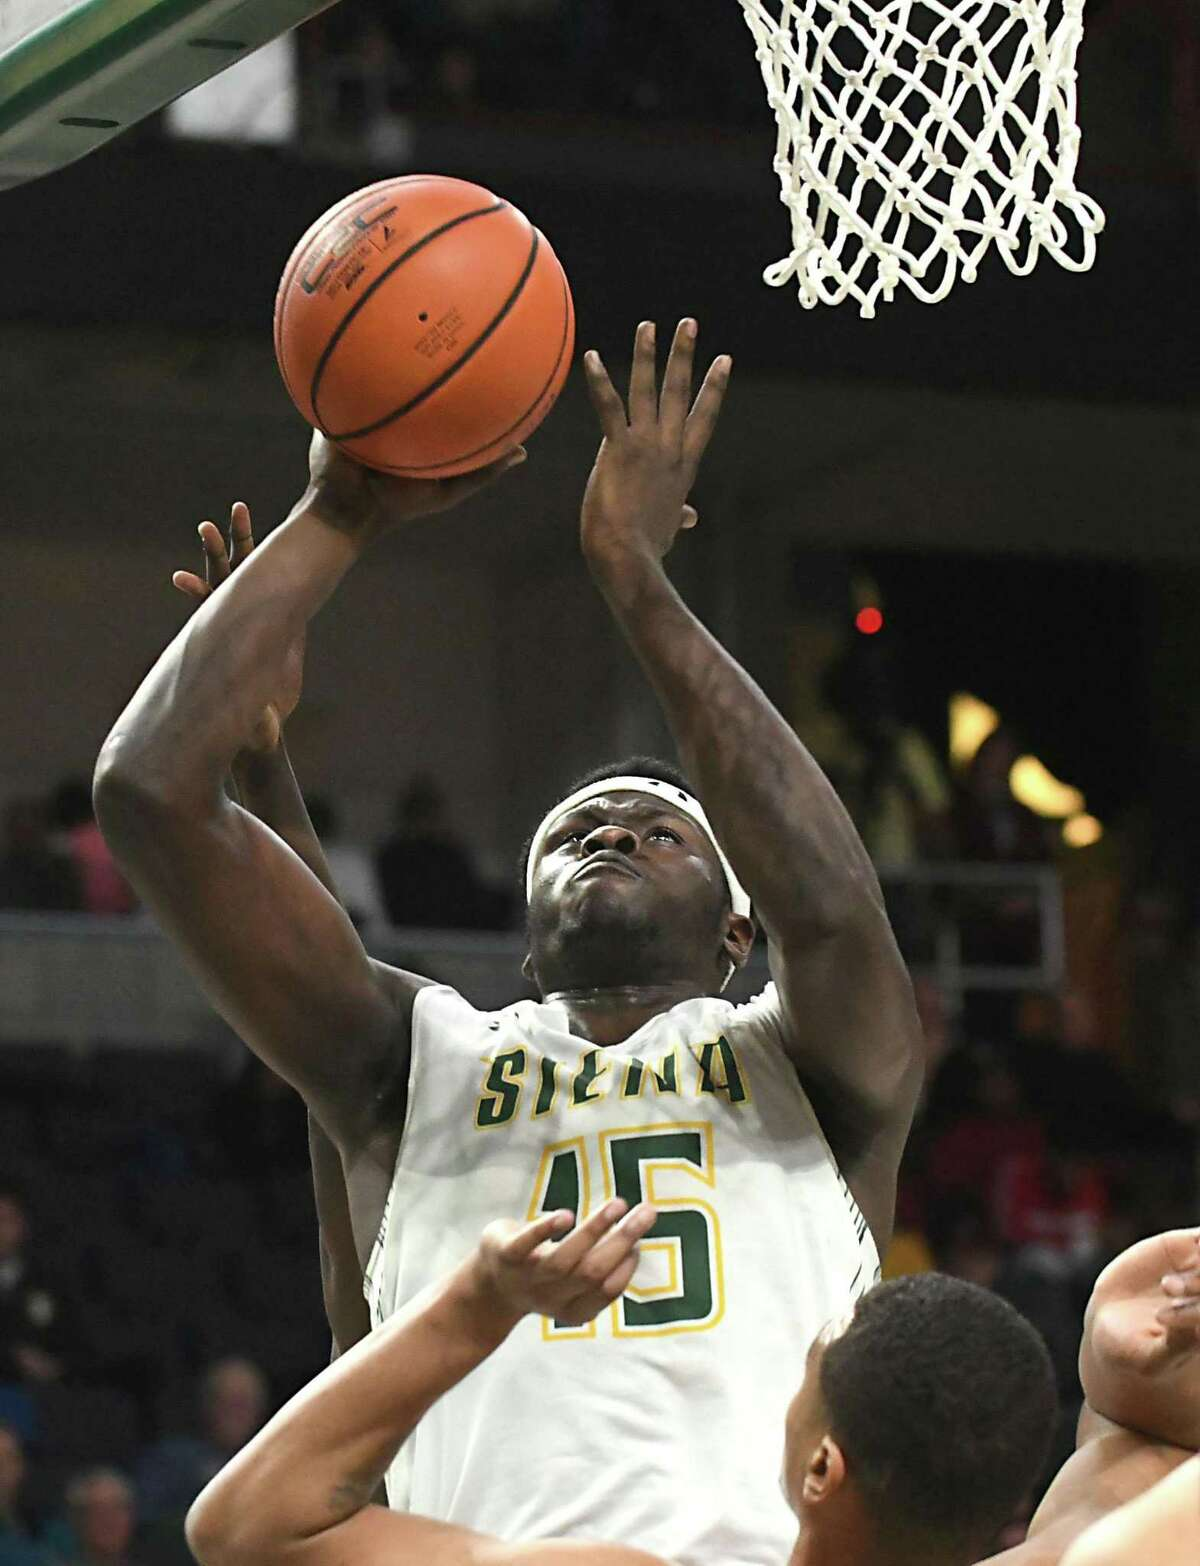 Siena's Prince Oduro goes up for a layup during a basketball game against Fairfield at Times Union Center on Wednesday, Feb. 21, 2018 in Albany, N.Y. (Lori Van Buren/Times Union)